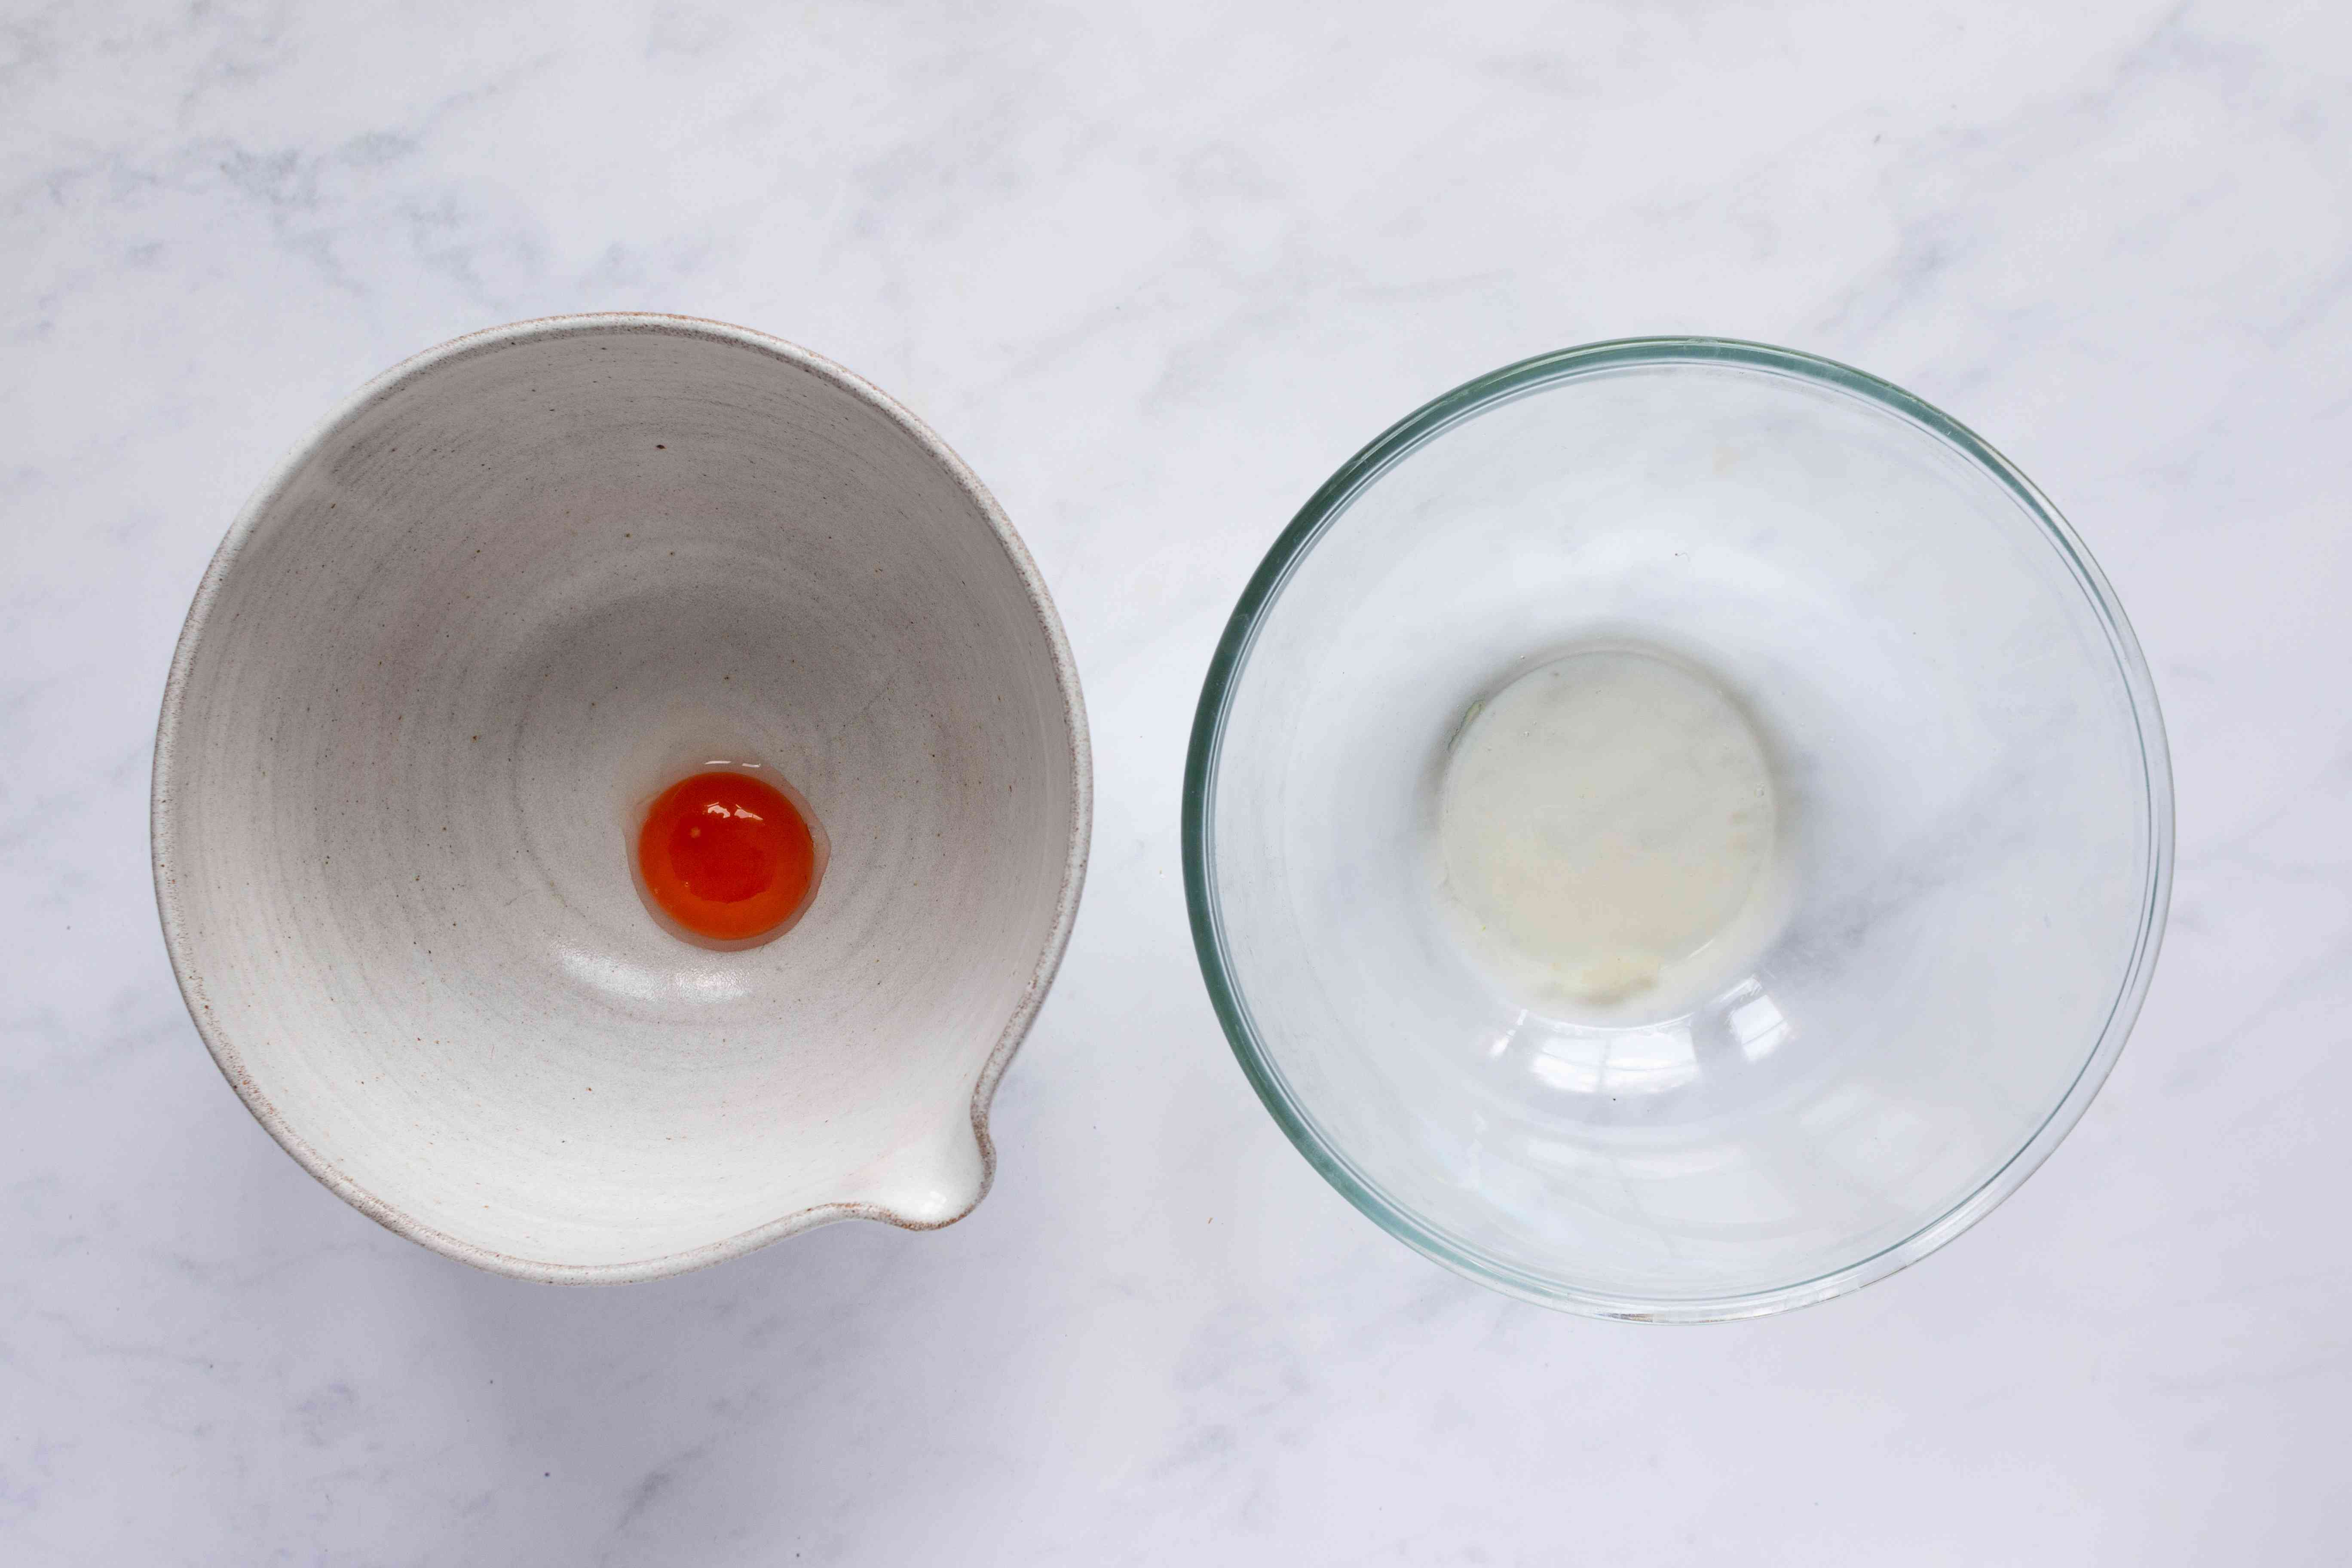 egg white and egg yolk separated into bowls